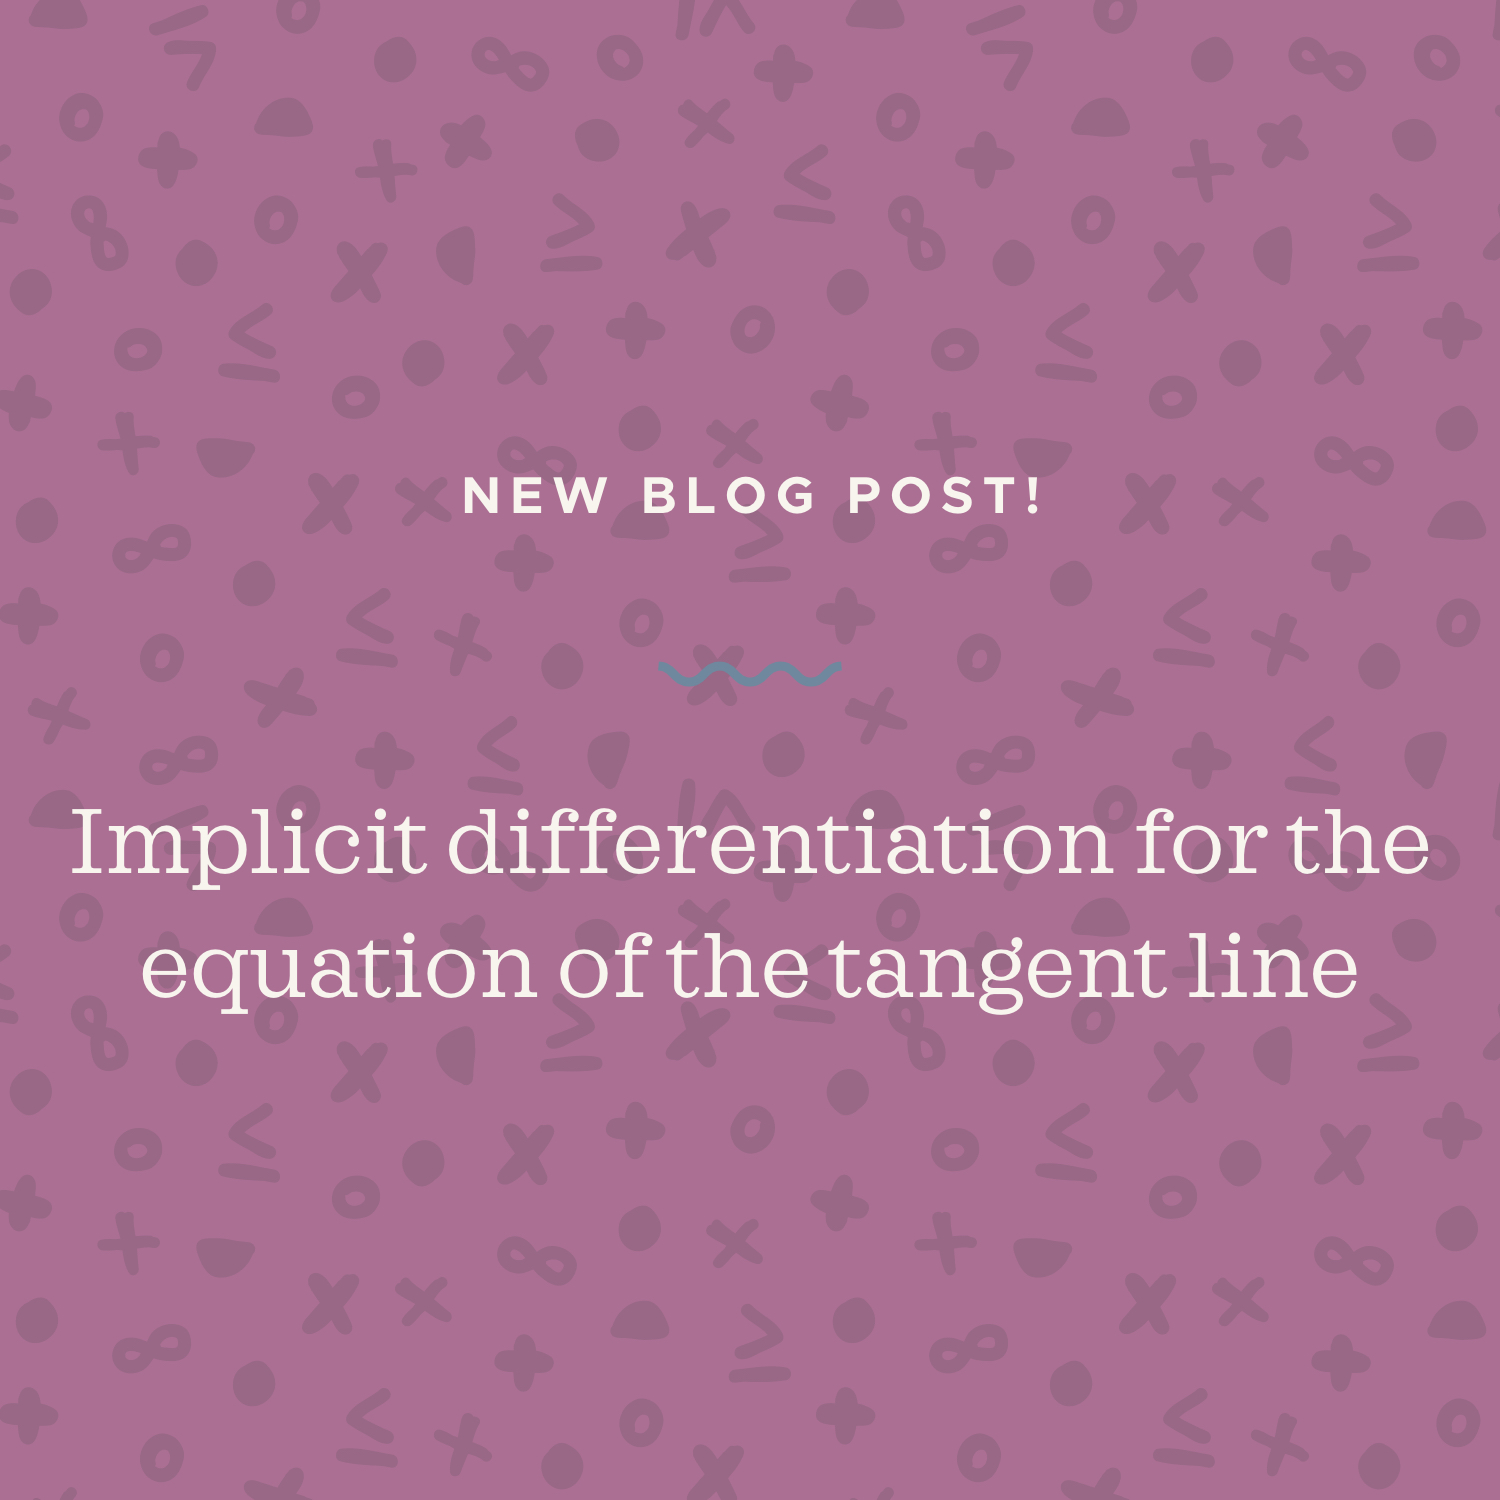 Implicit differentiation for the equation of the tangent line blog post.jpeg